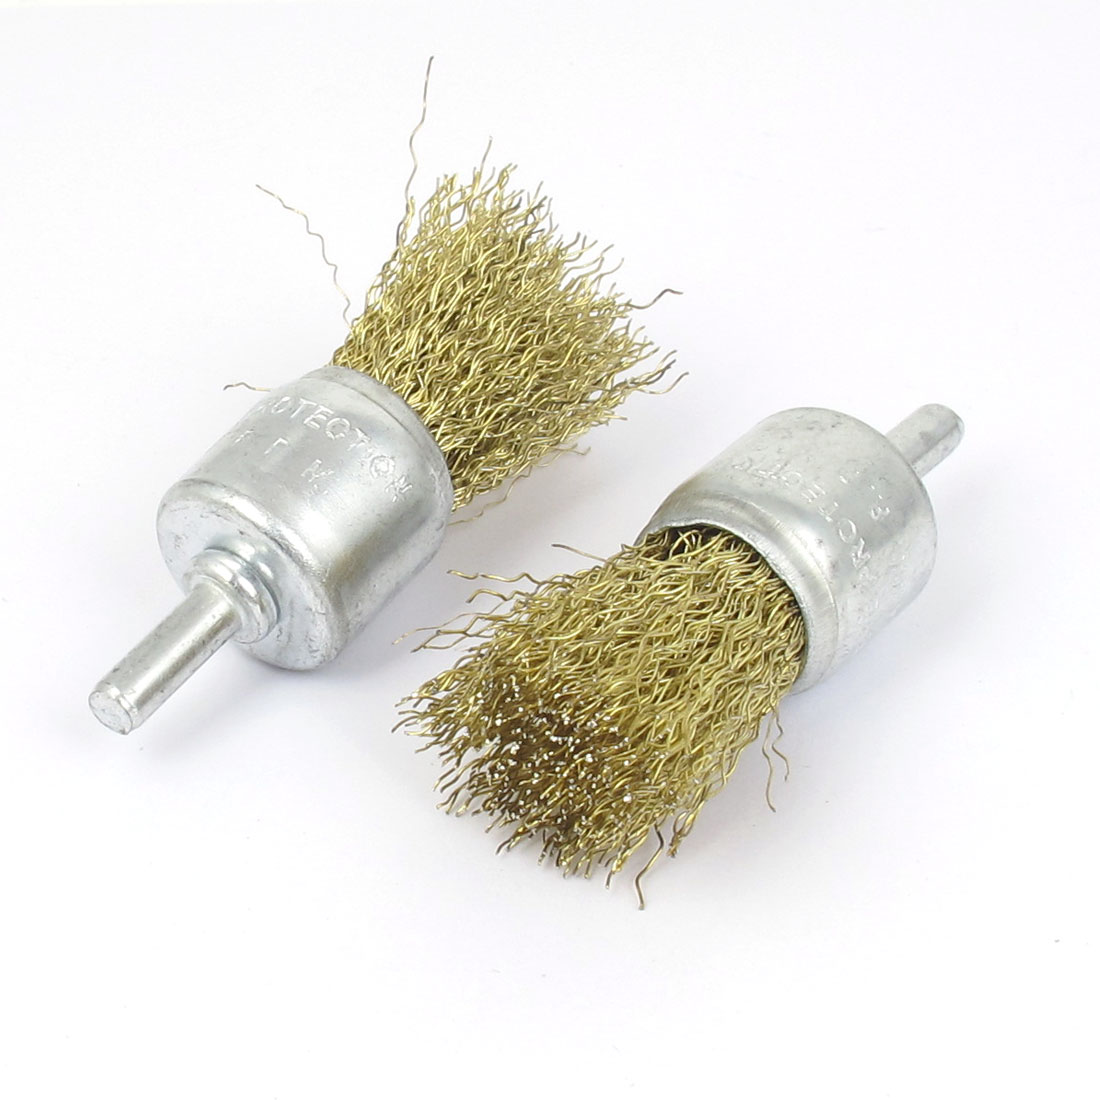 6mm Shank 24mm Dia Crimped Steel Wire Clean Polishing Brushes 2pcs